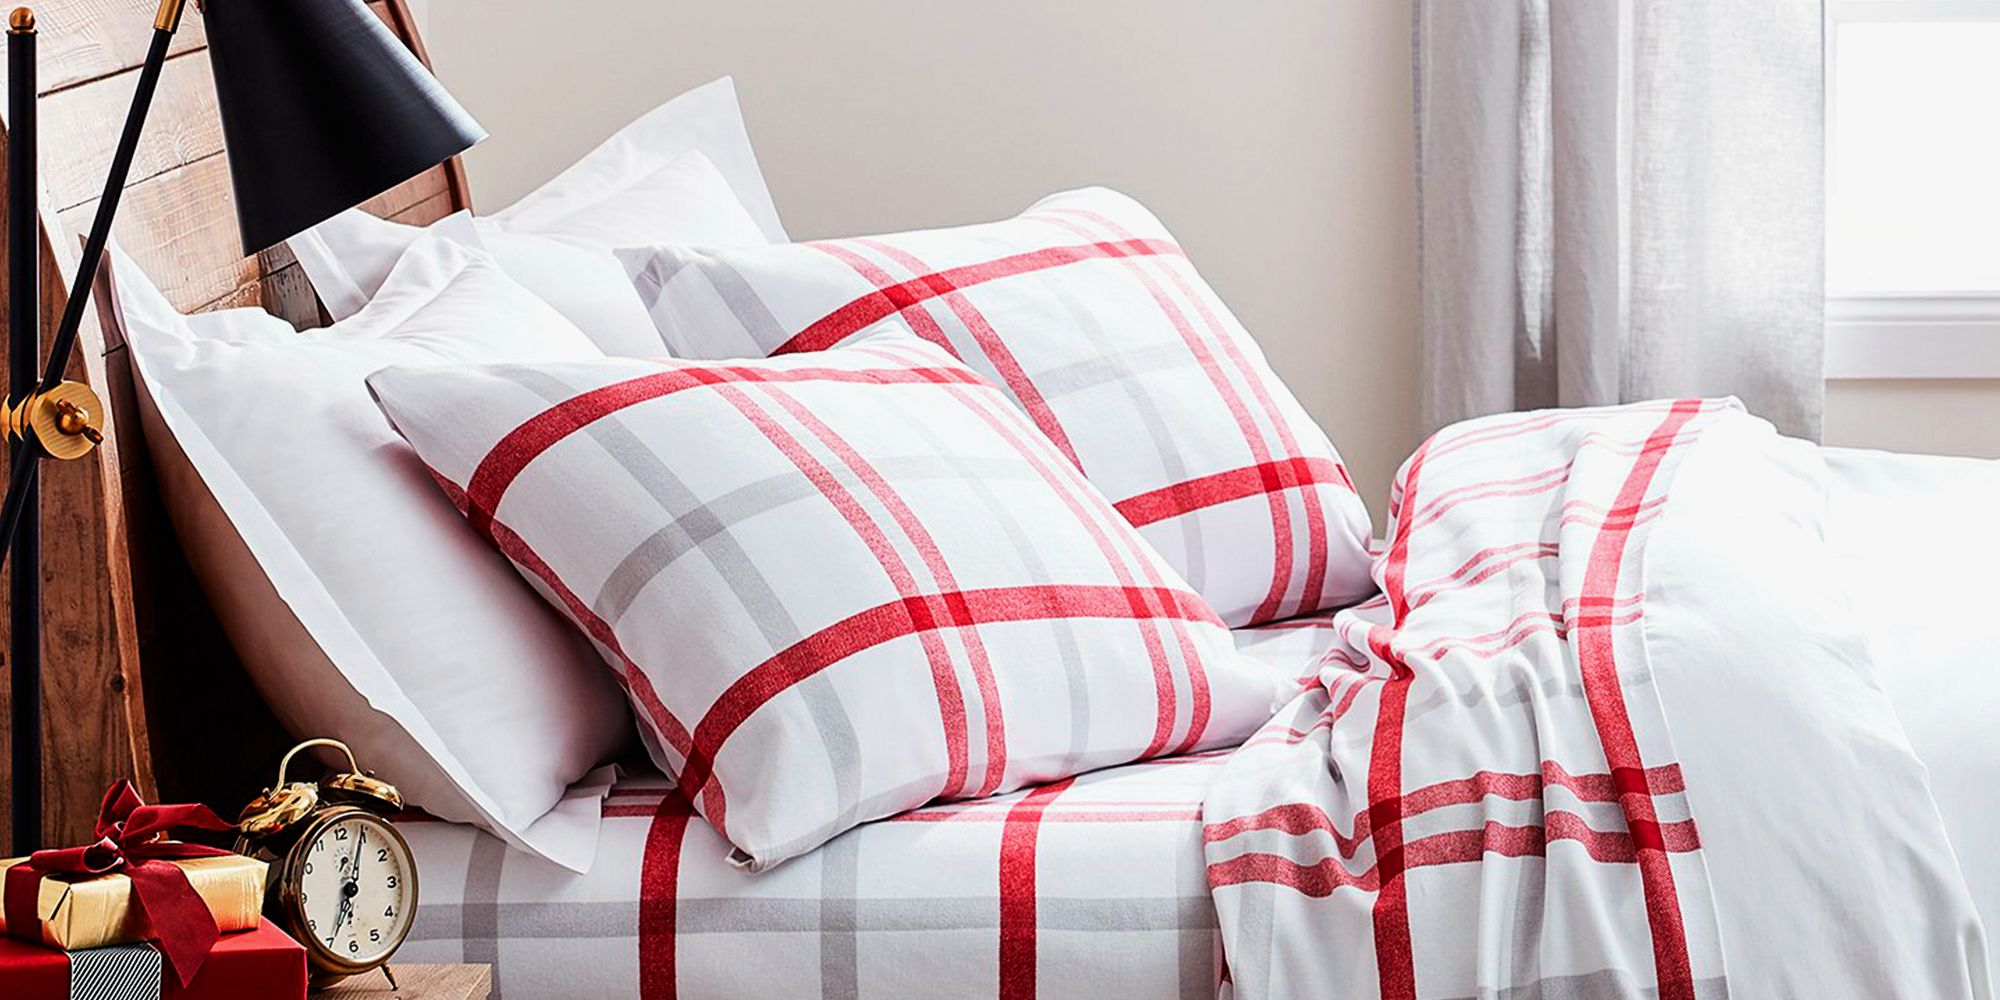 Best Flannel Sheets Reviews and Buying Guide by www.snoremagazine.com